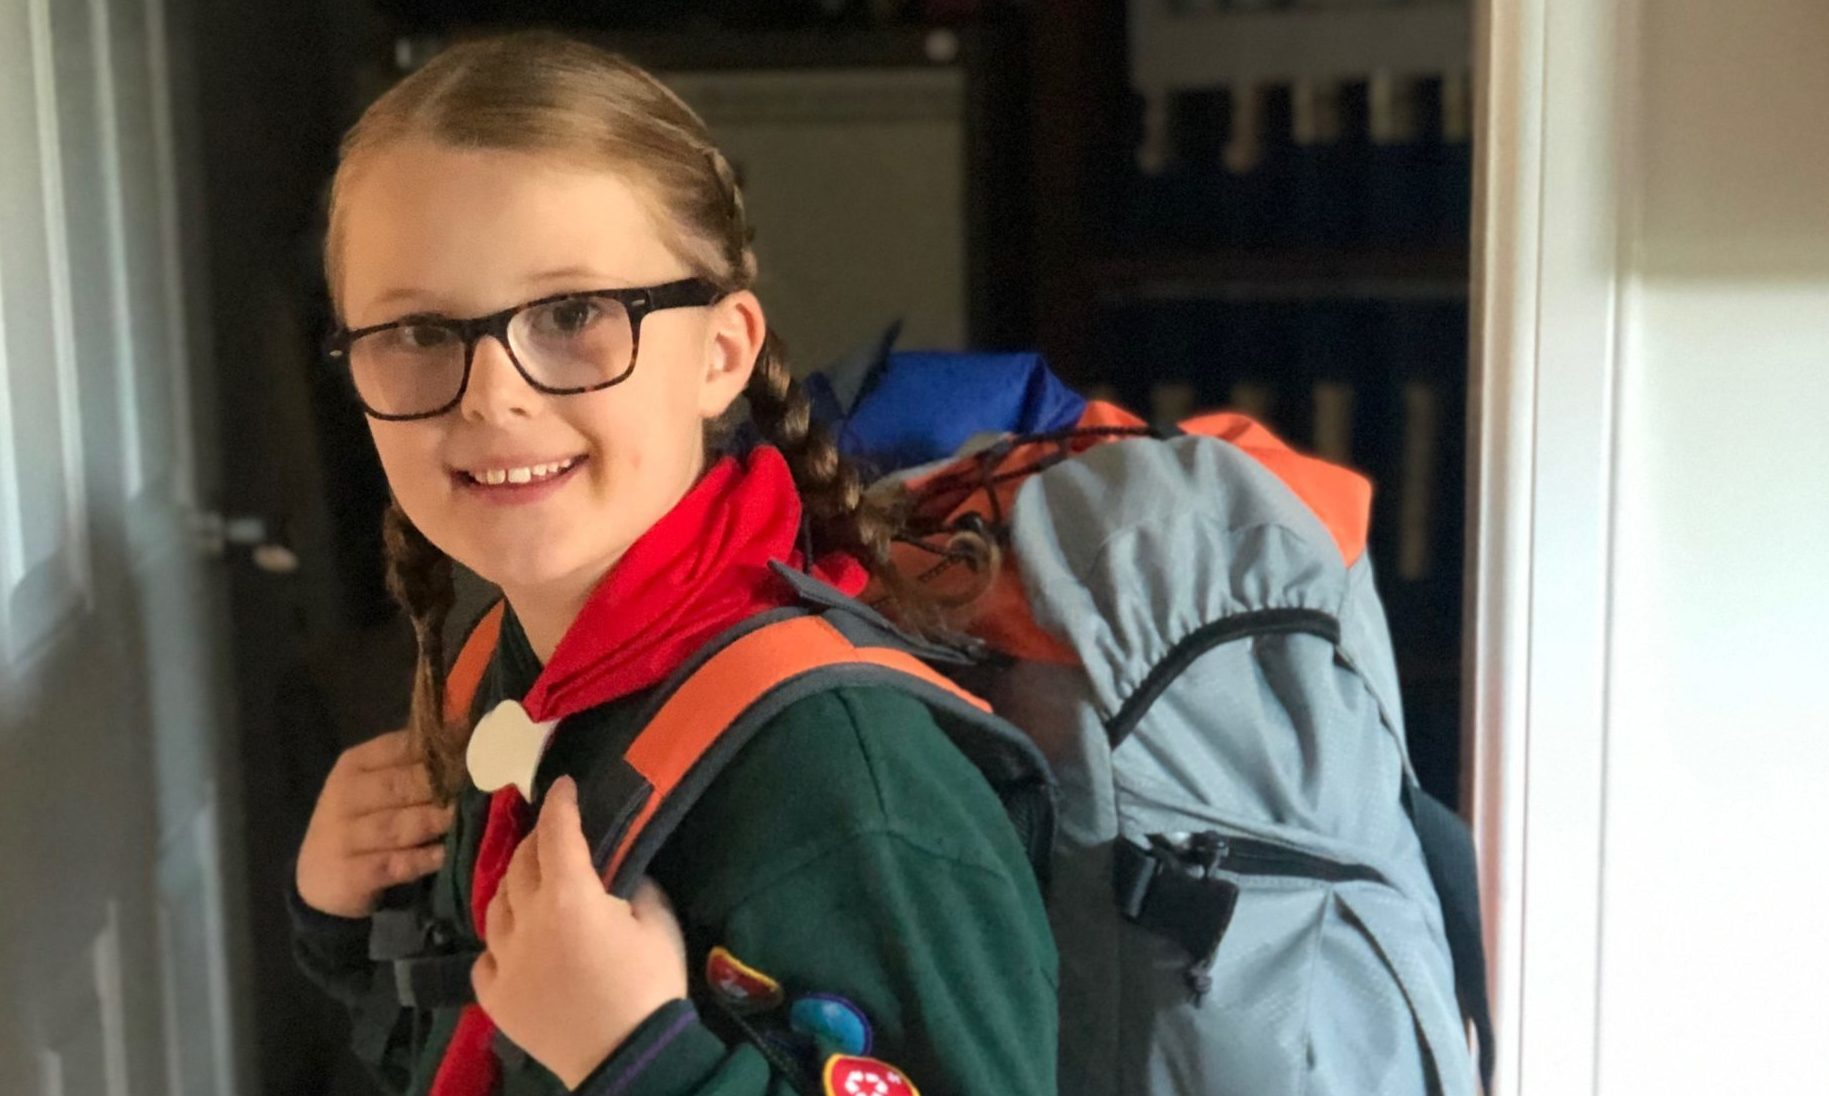 Cub member Olivia Madigan, 9, of 38th Aberdeen Scout group, took part in the lockdown camp.